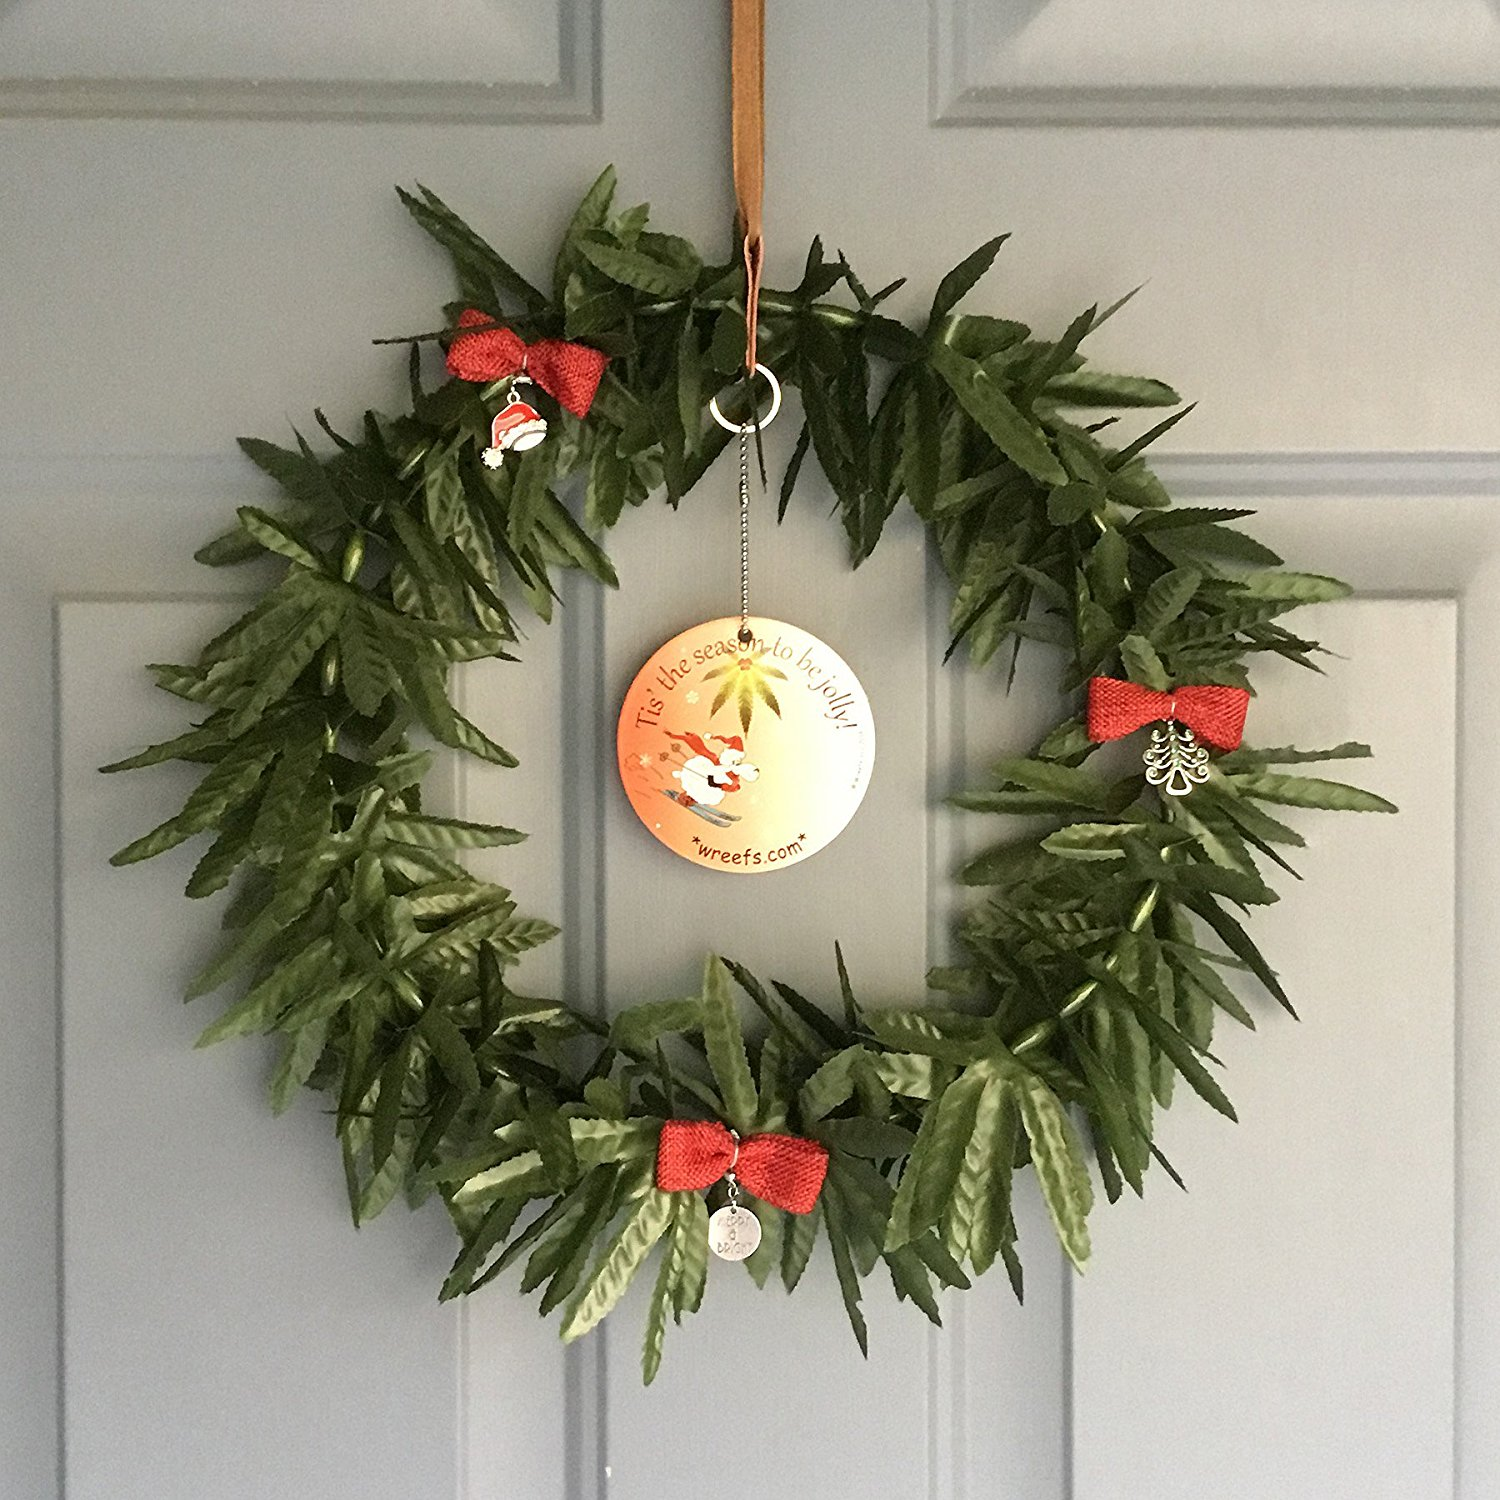 The Wreef Artificial Marijuana Wreath